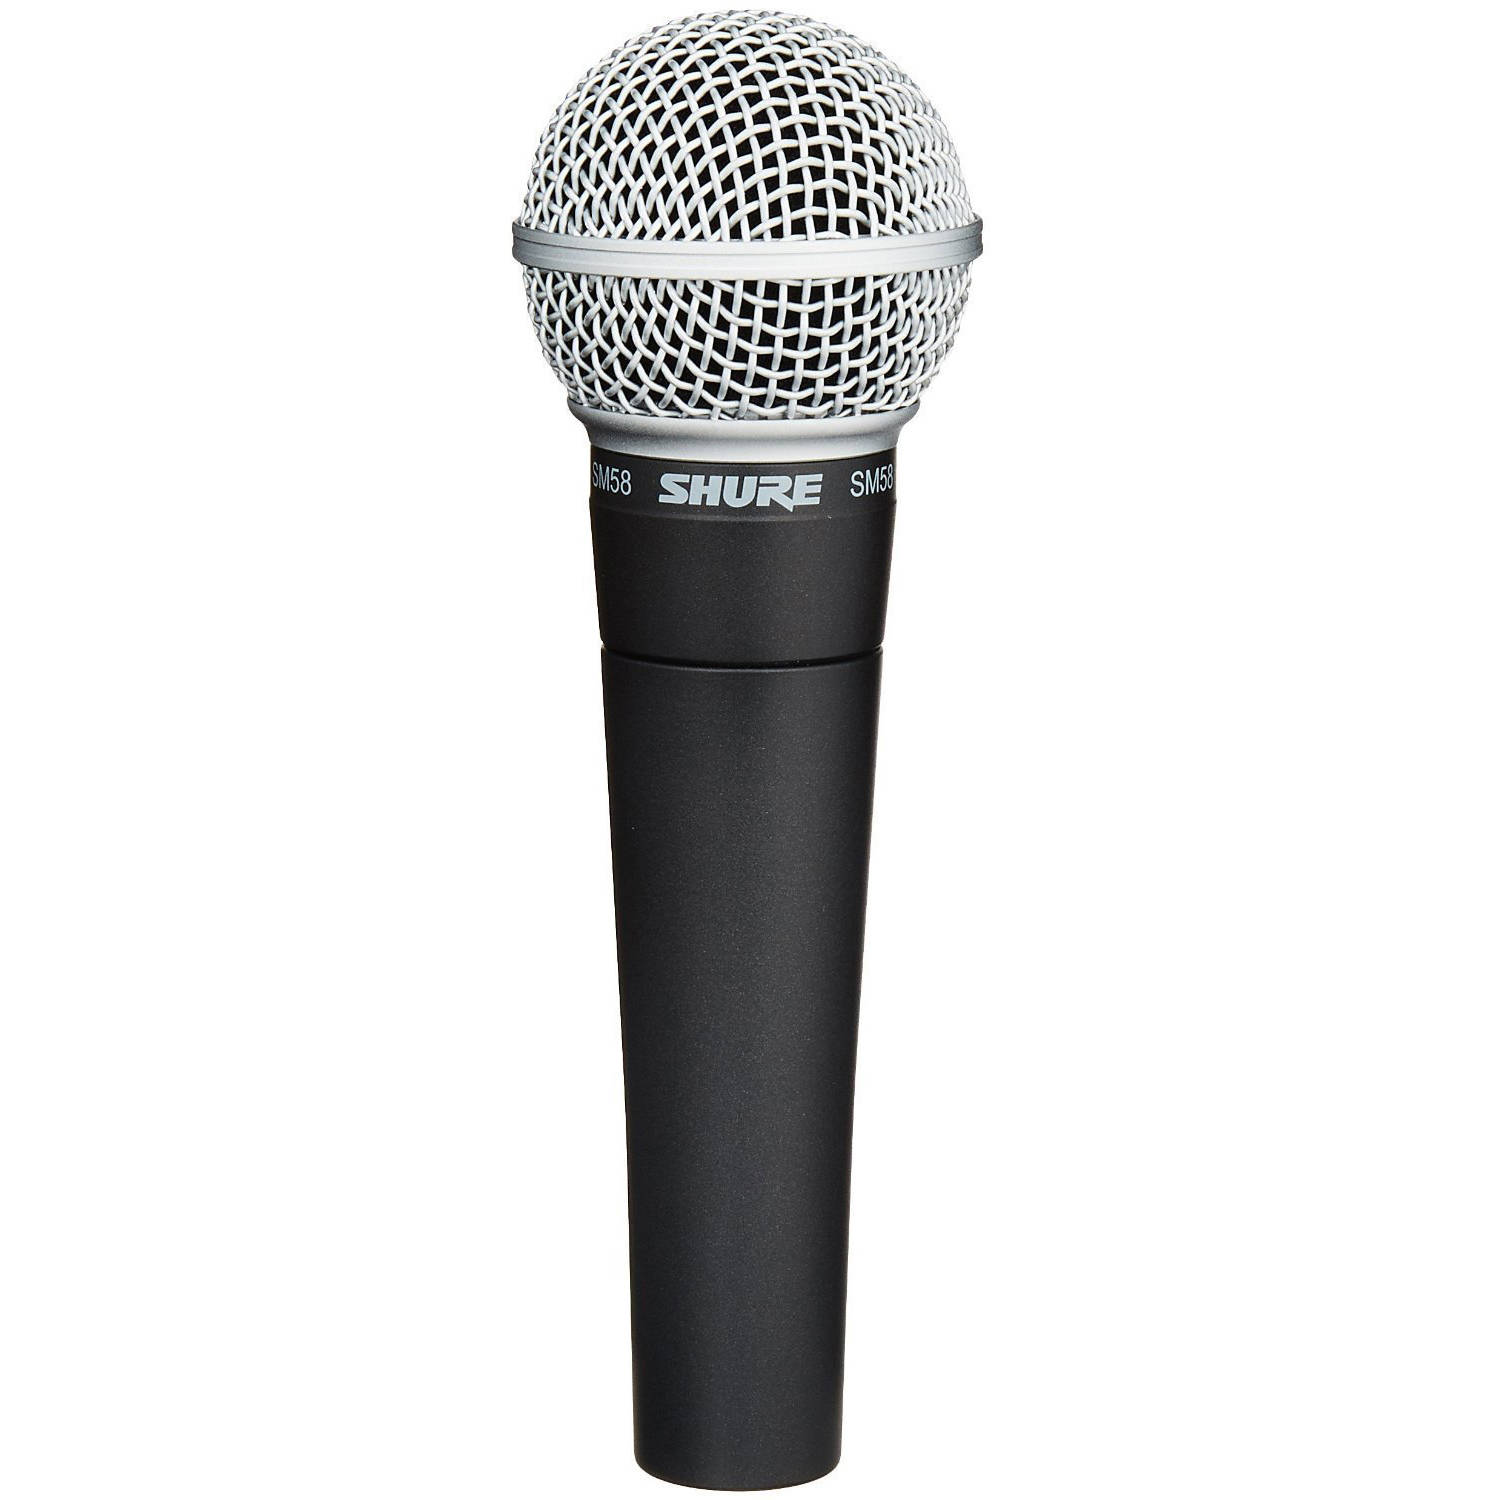 Shure SM58-LC Dynamic Vocal Microphone (Cable Not Included) by Shure